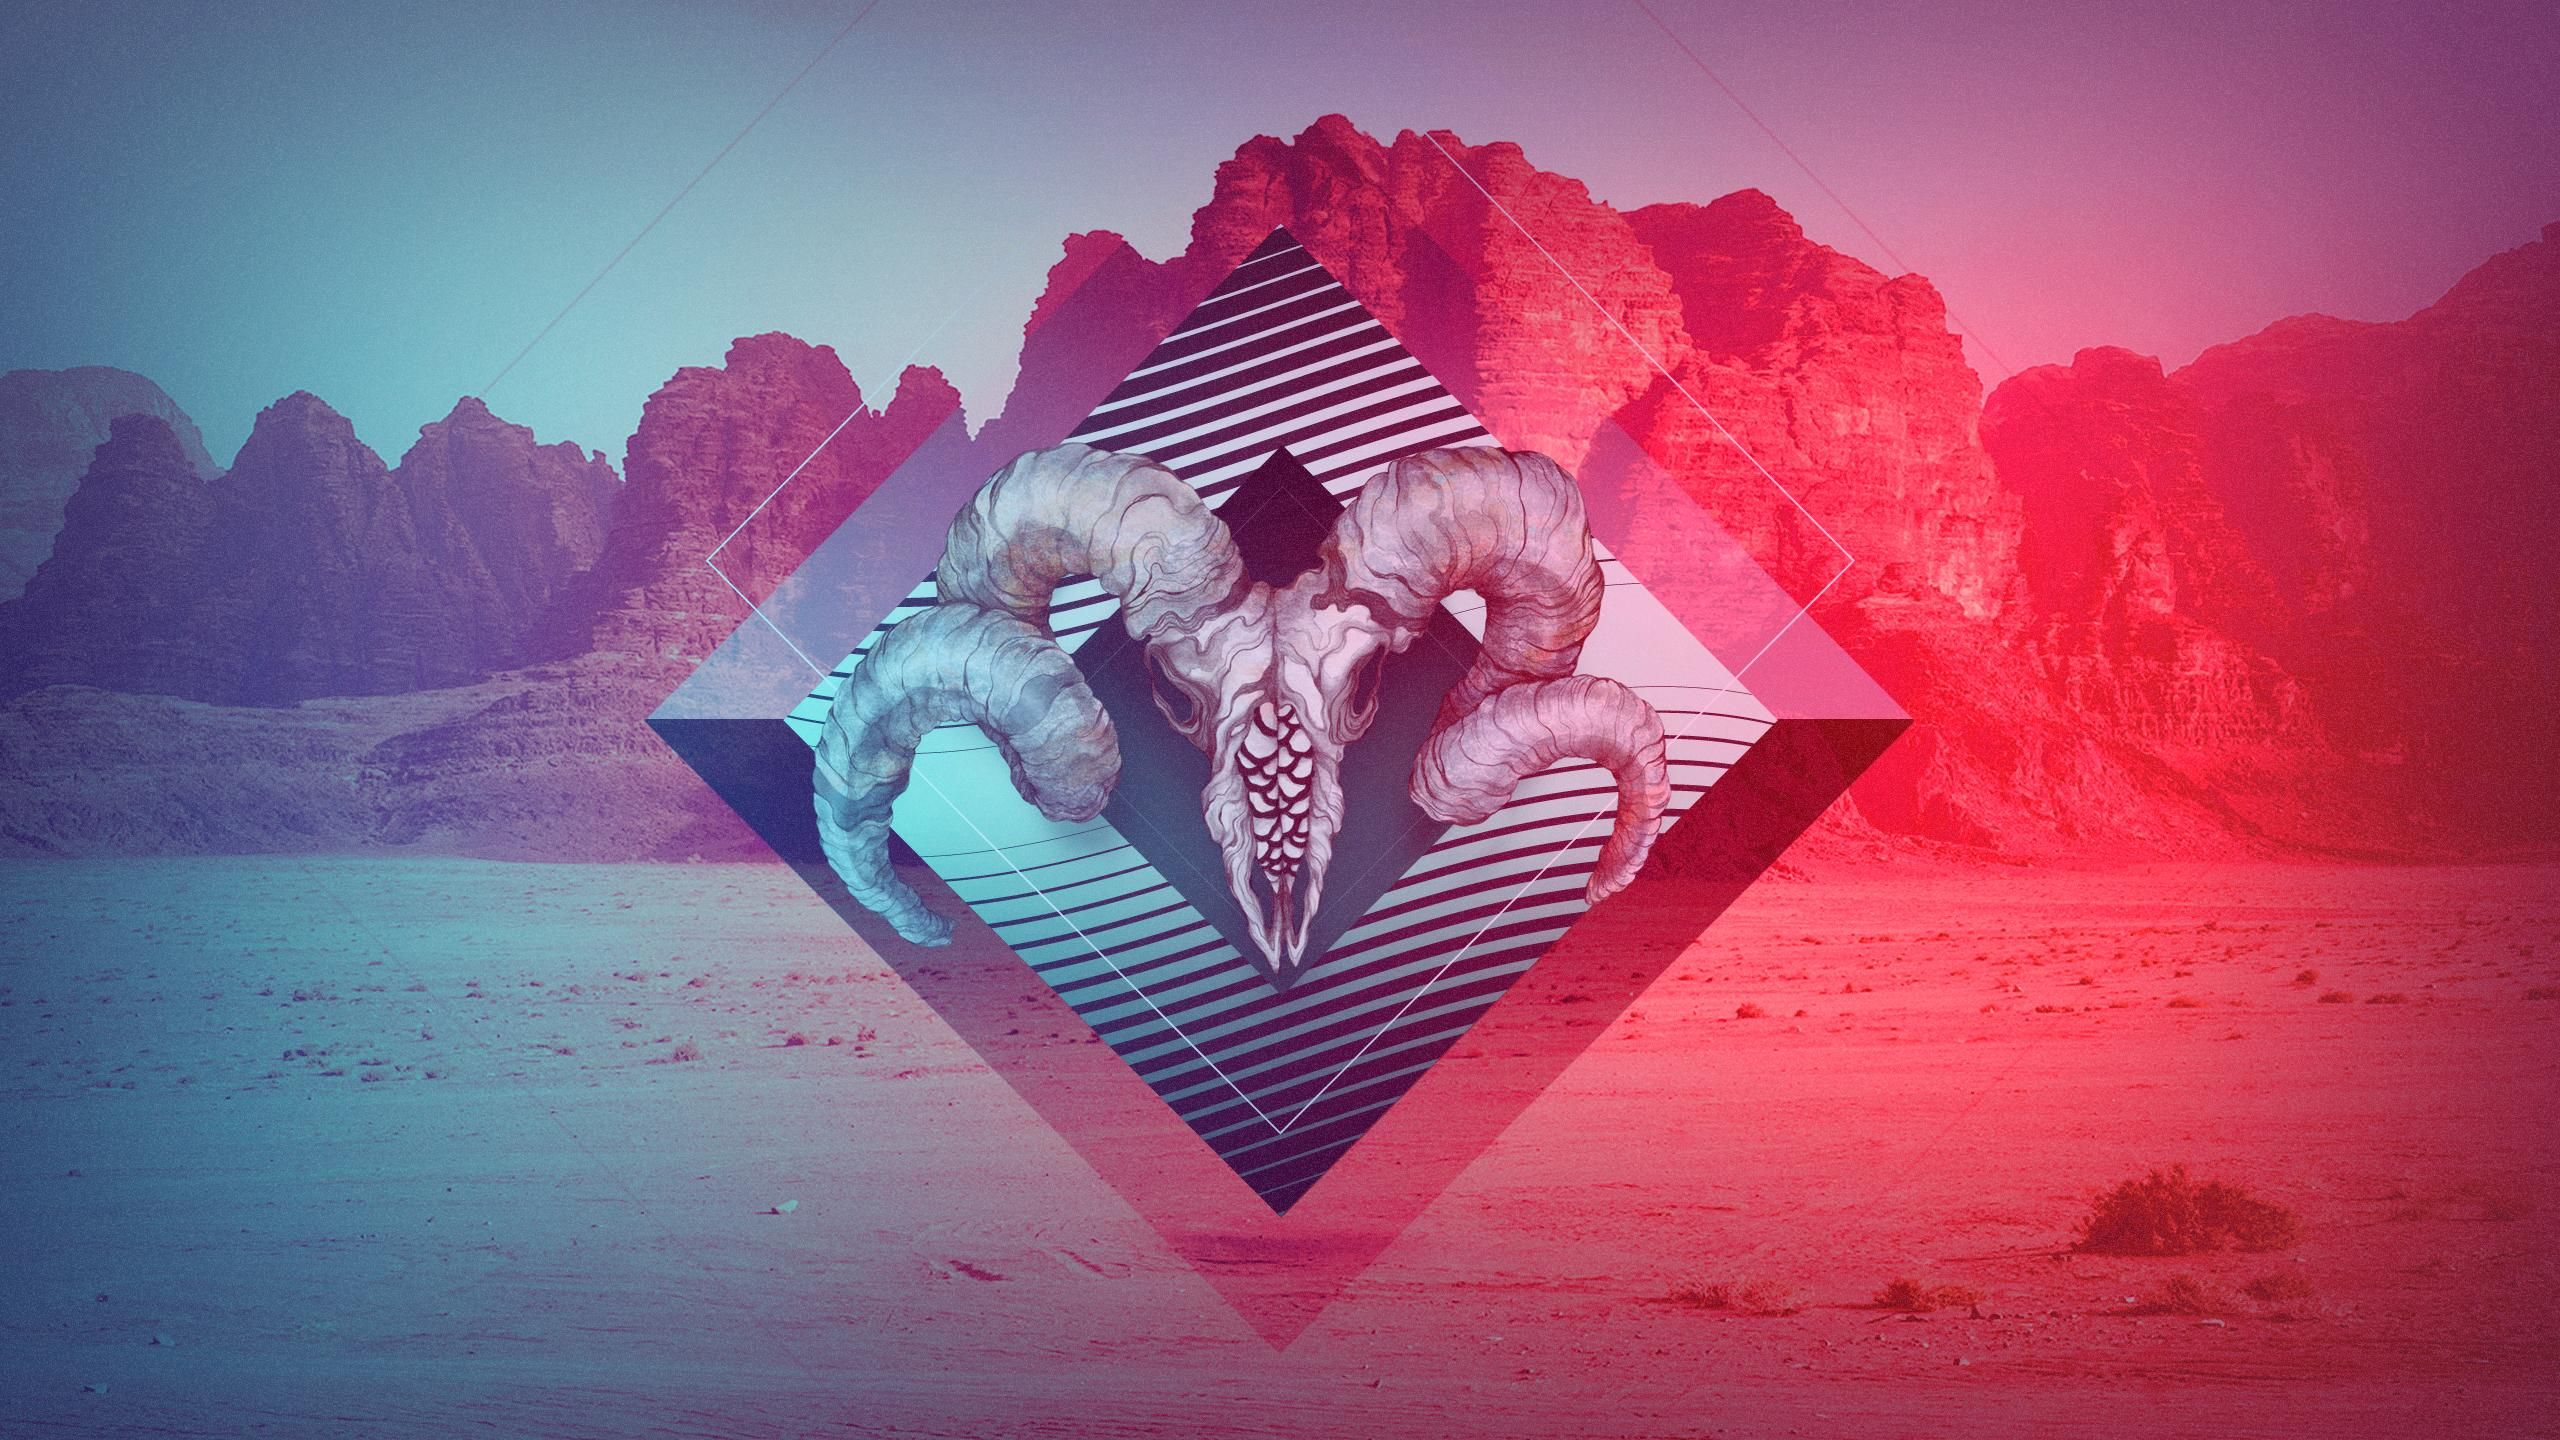 Geometric Abstract Shapes Wallpaper Collage 拼